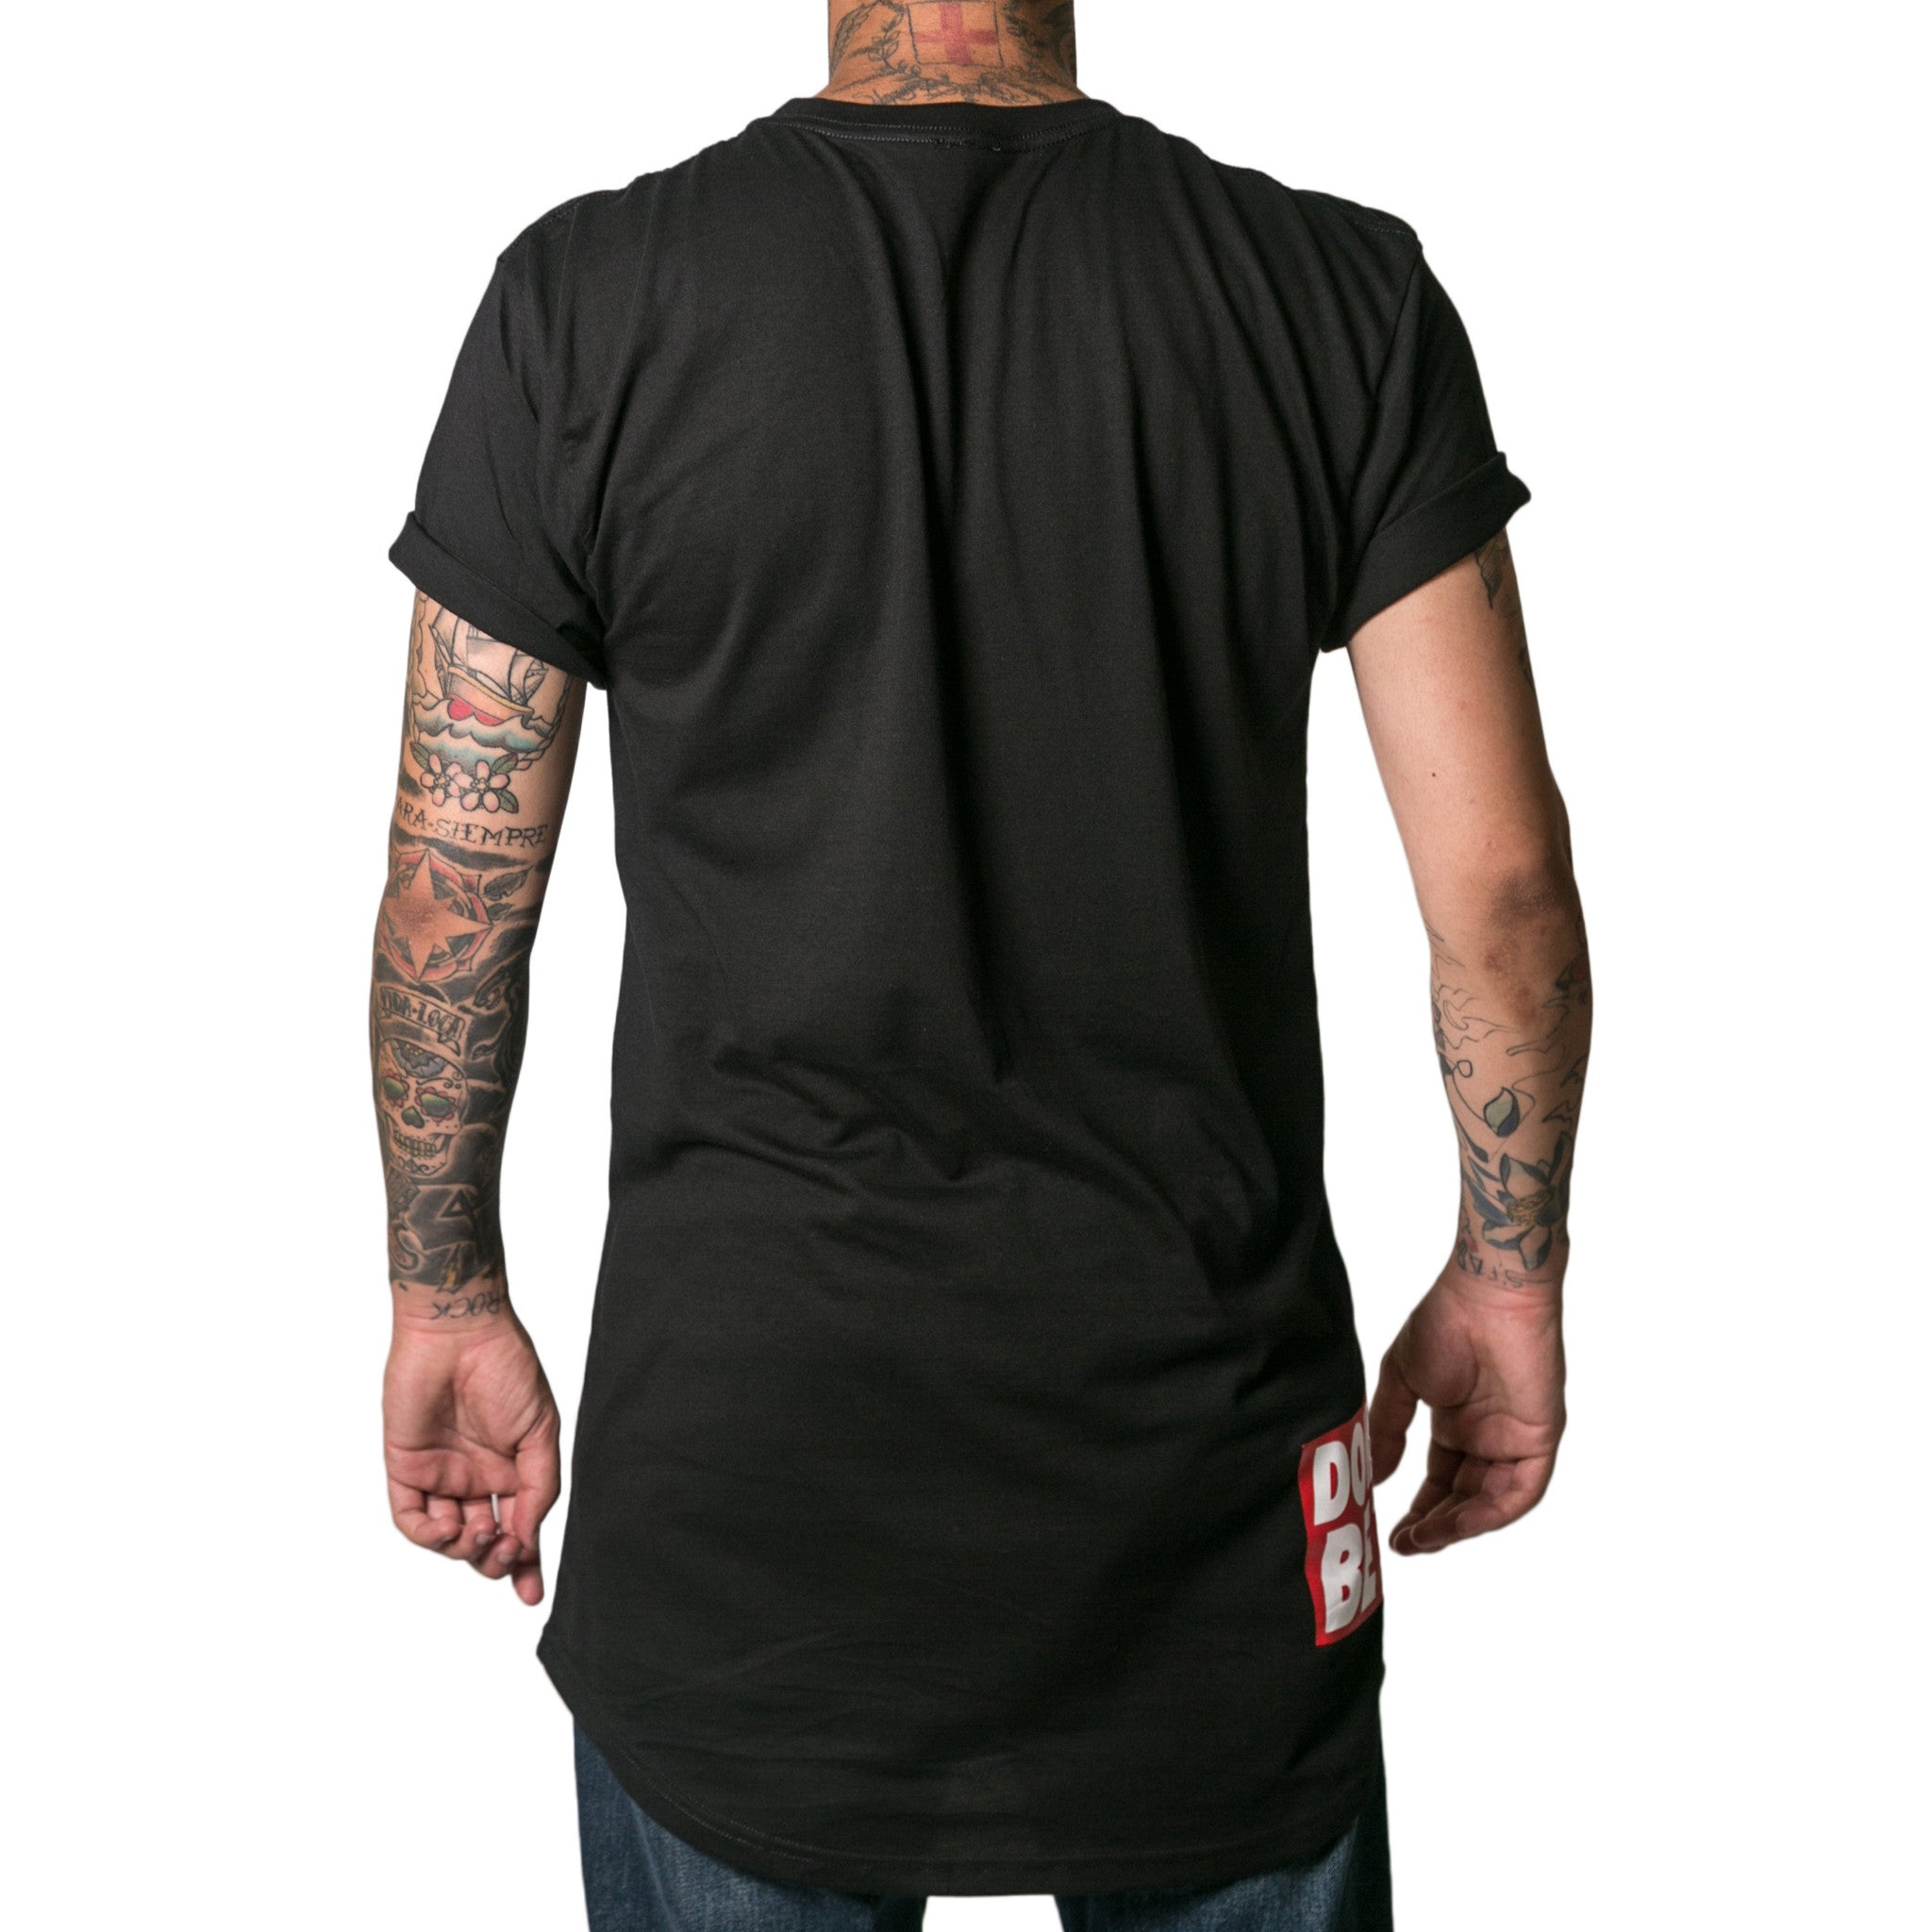 DWBT T-Shirt Long Man - Fol The Brand